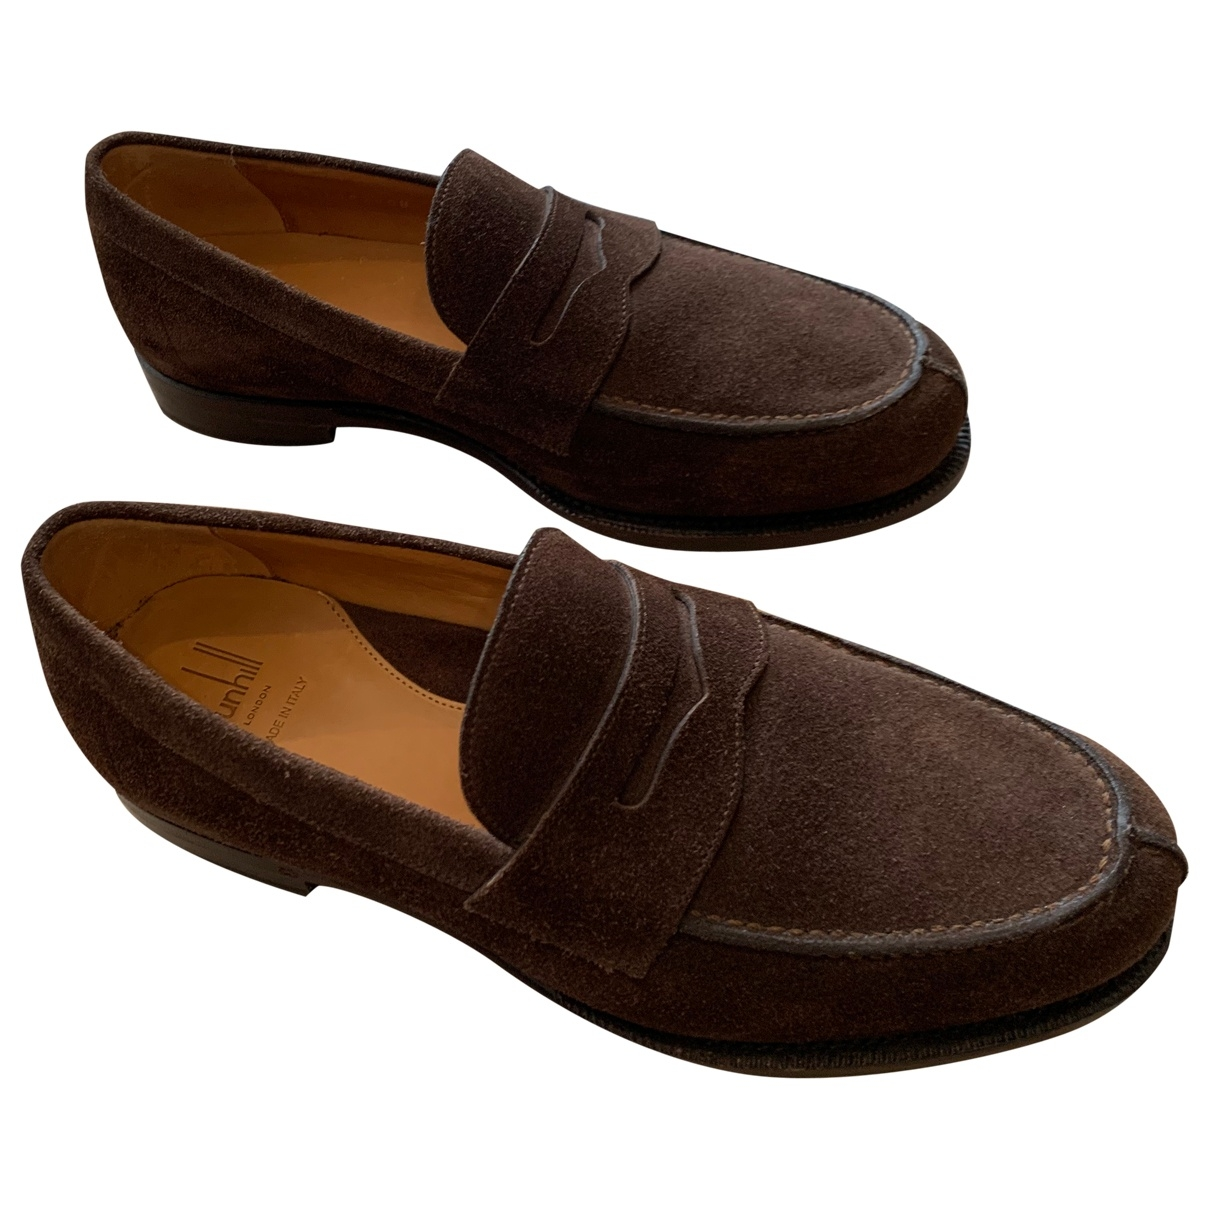 Alfred Dunhill \N Brown Suede Flats for Men 40.5 EU